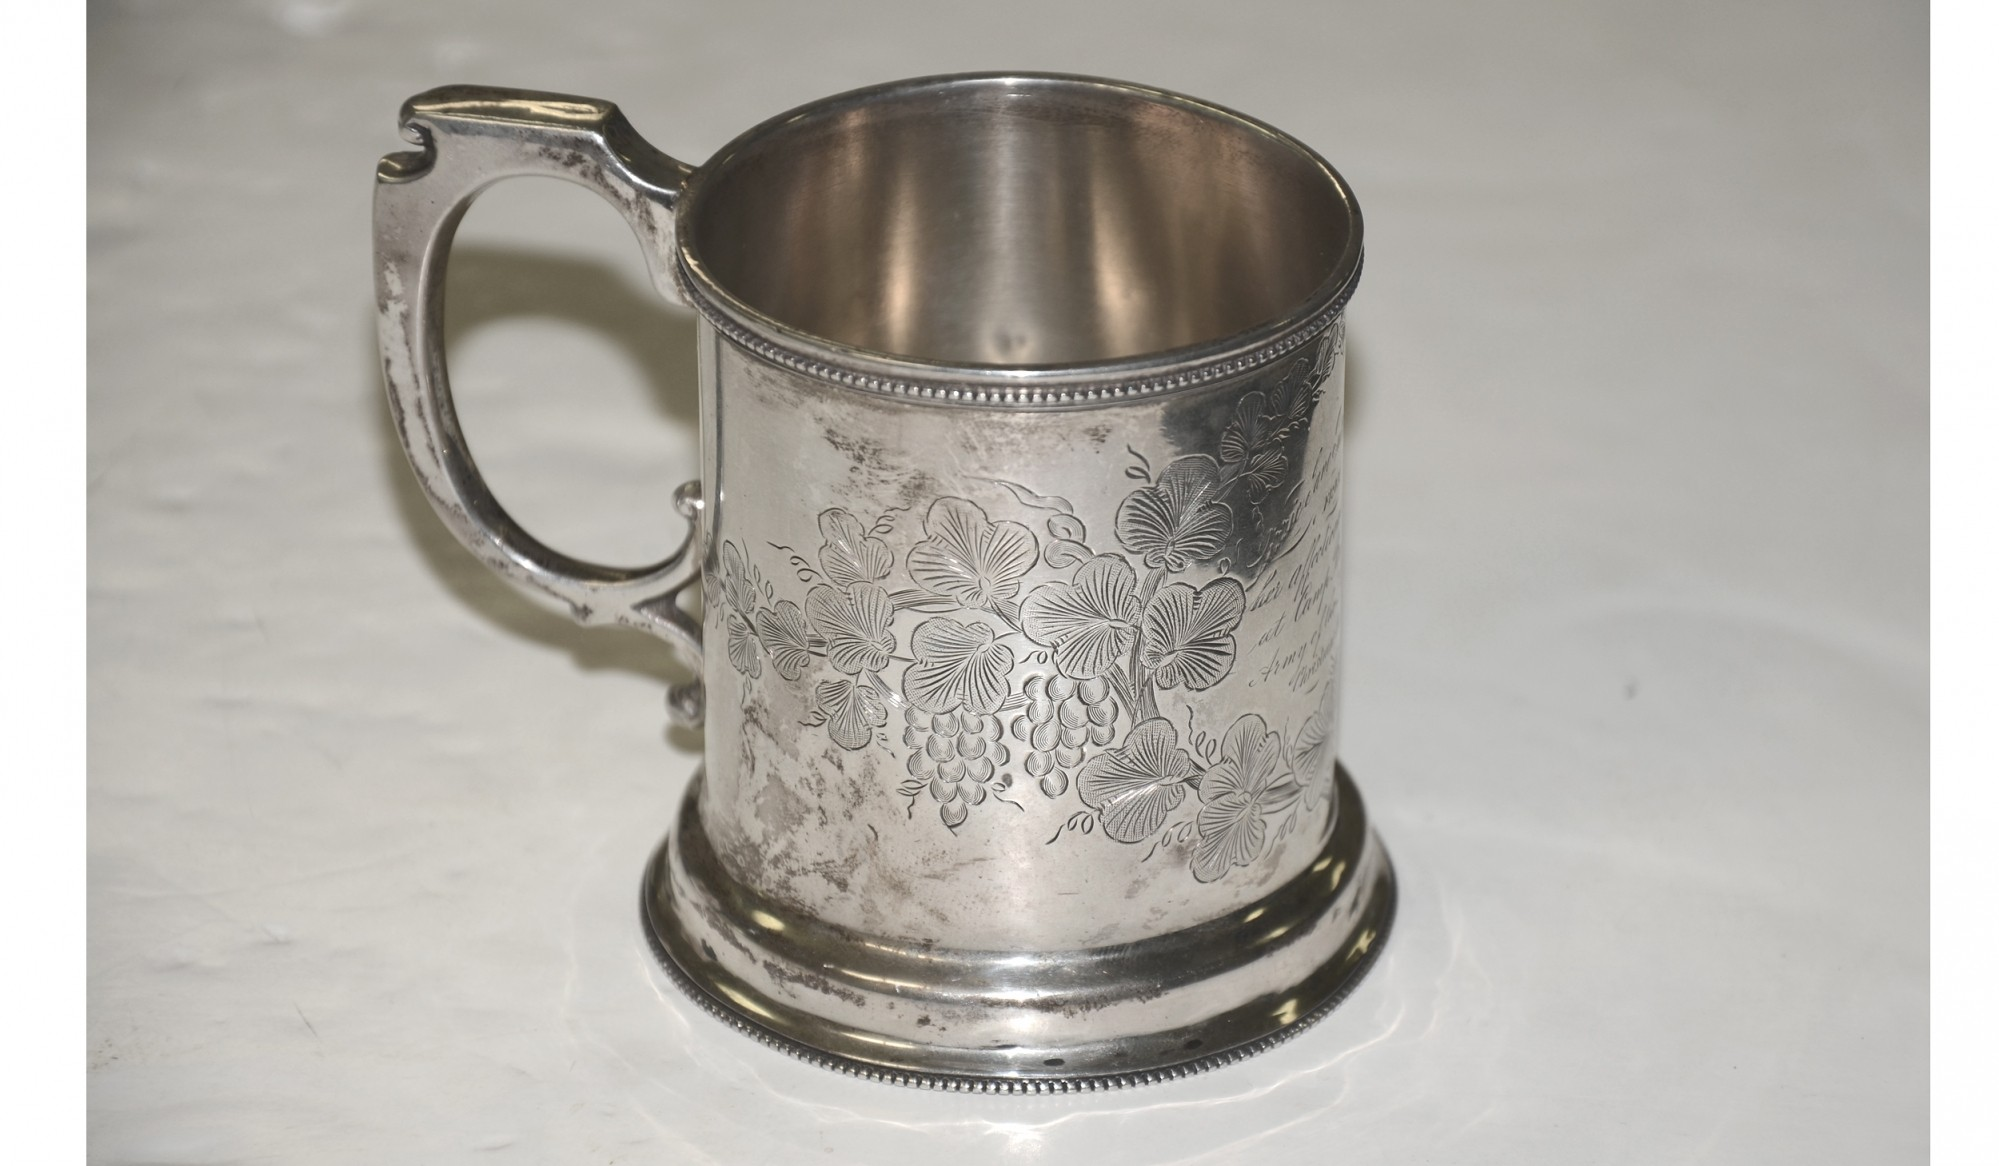 SILVER PRESENTATION CUP FROM MAJ. DEXTER PARKER TO HIS DAUGHTER LIZZIE, DATED 1861